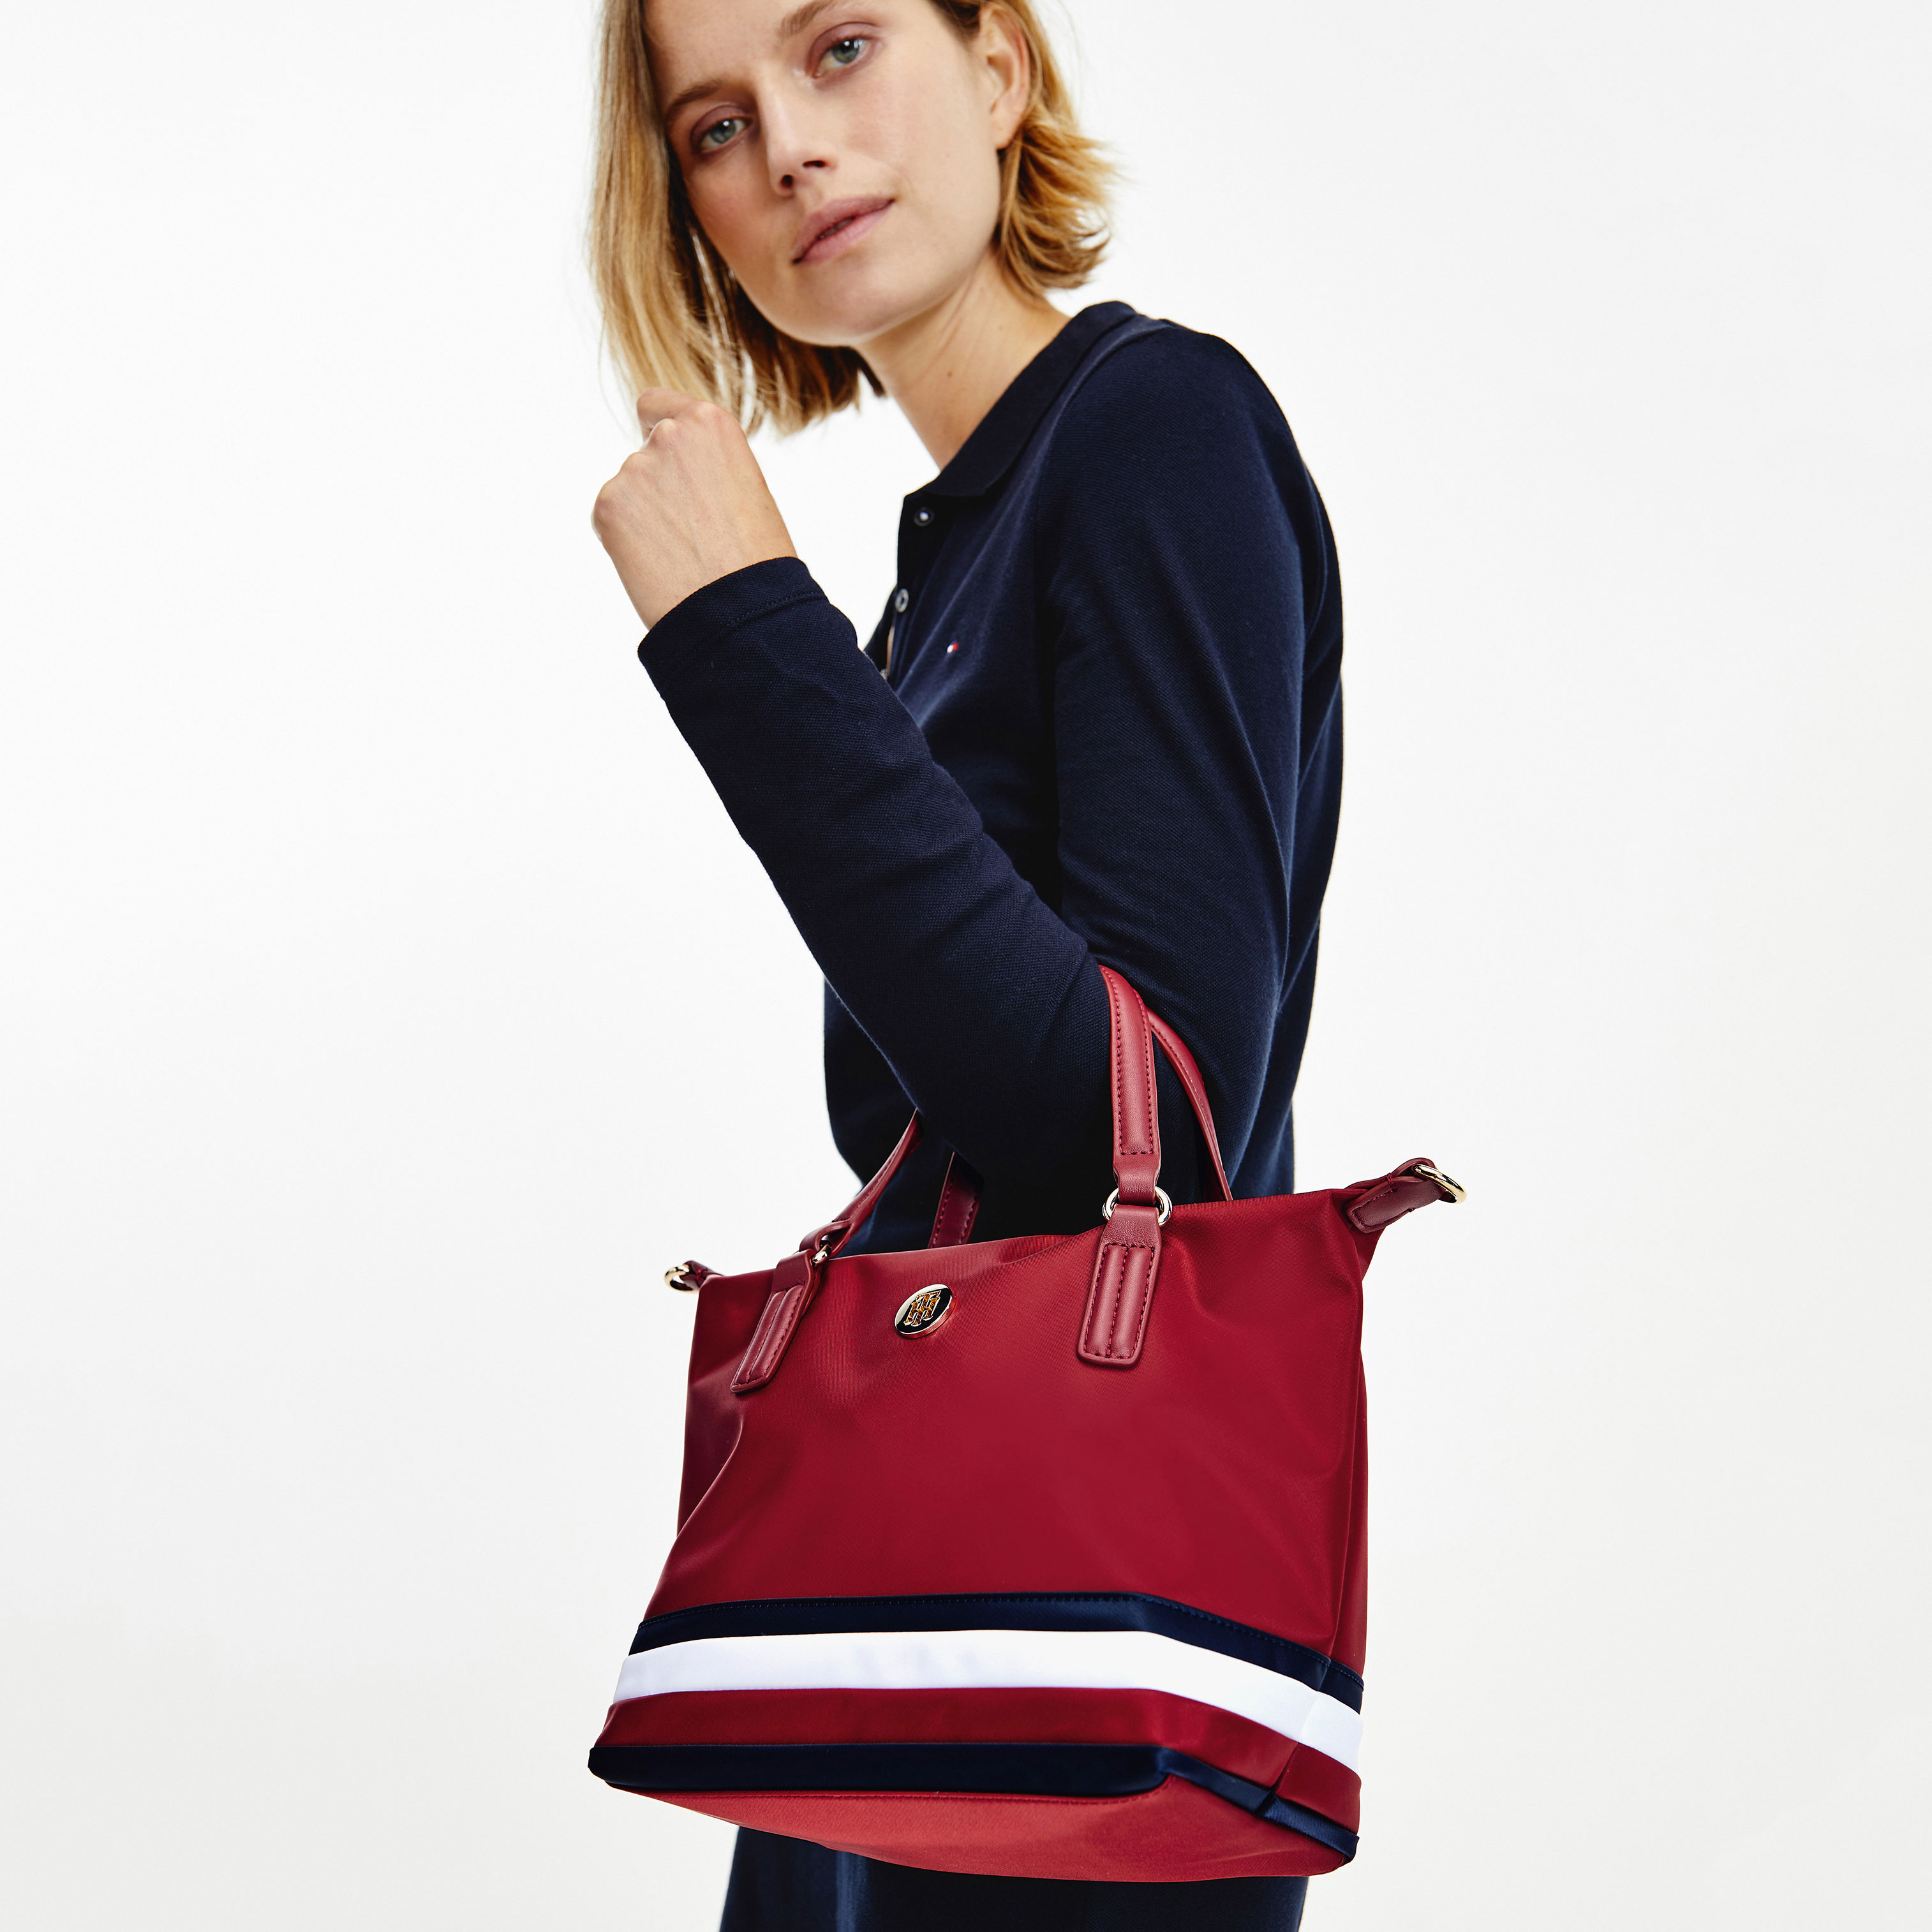 TOMMY HILFIGER Marroquinería Bolso Poppy Small Tote Corp AW0AW10444-XIT